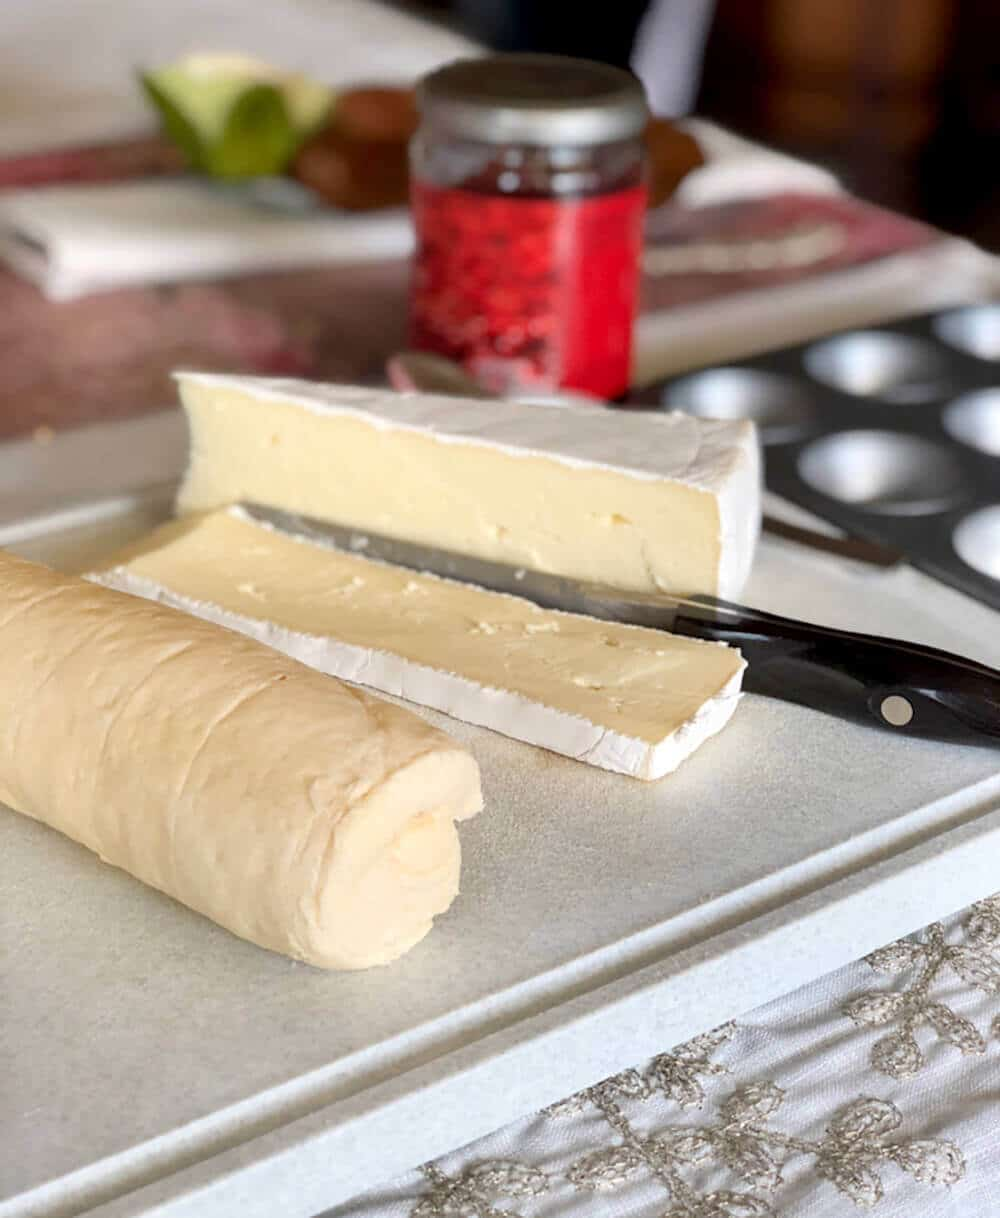 Simple ingredients for Cranberry brie tart appetizer